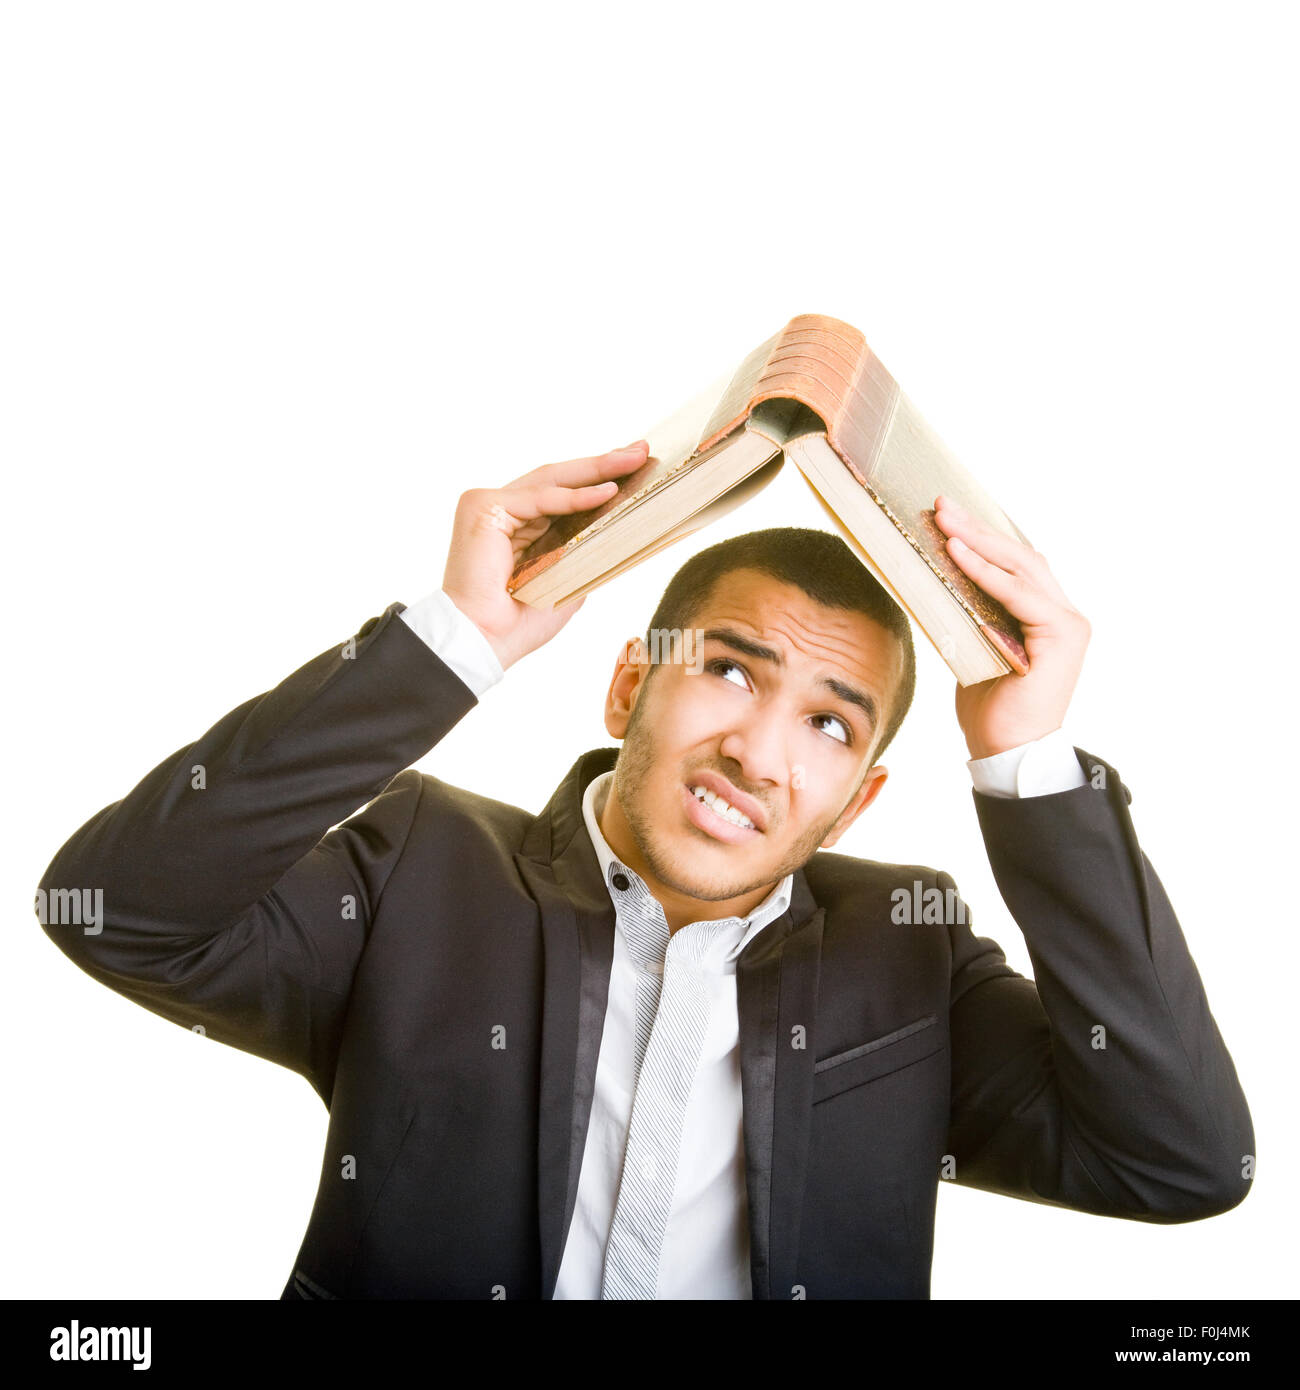 Fearful man using a book as protective roof over his head - Stock Image